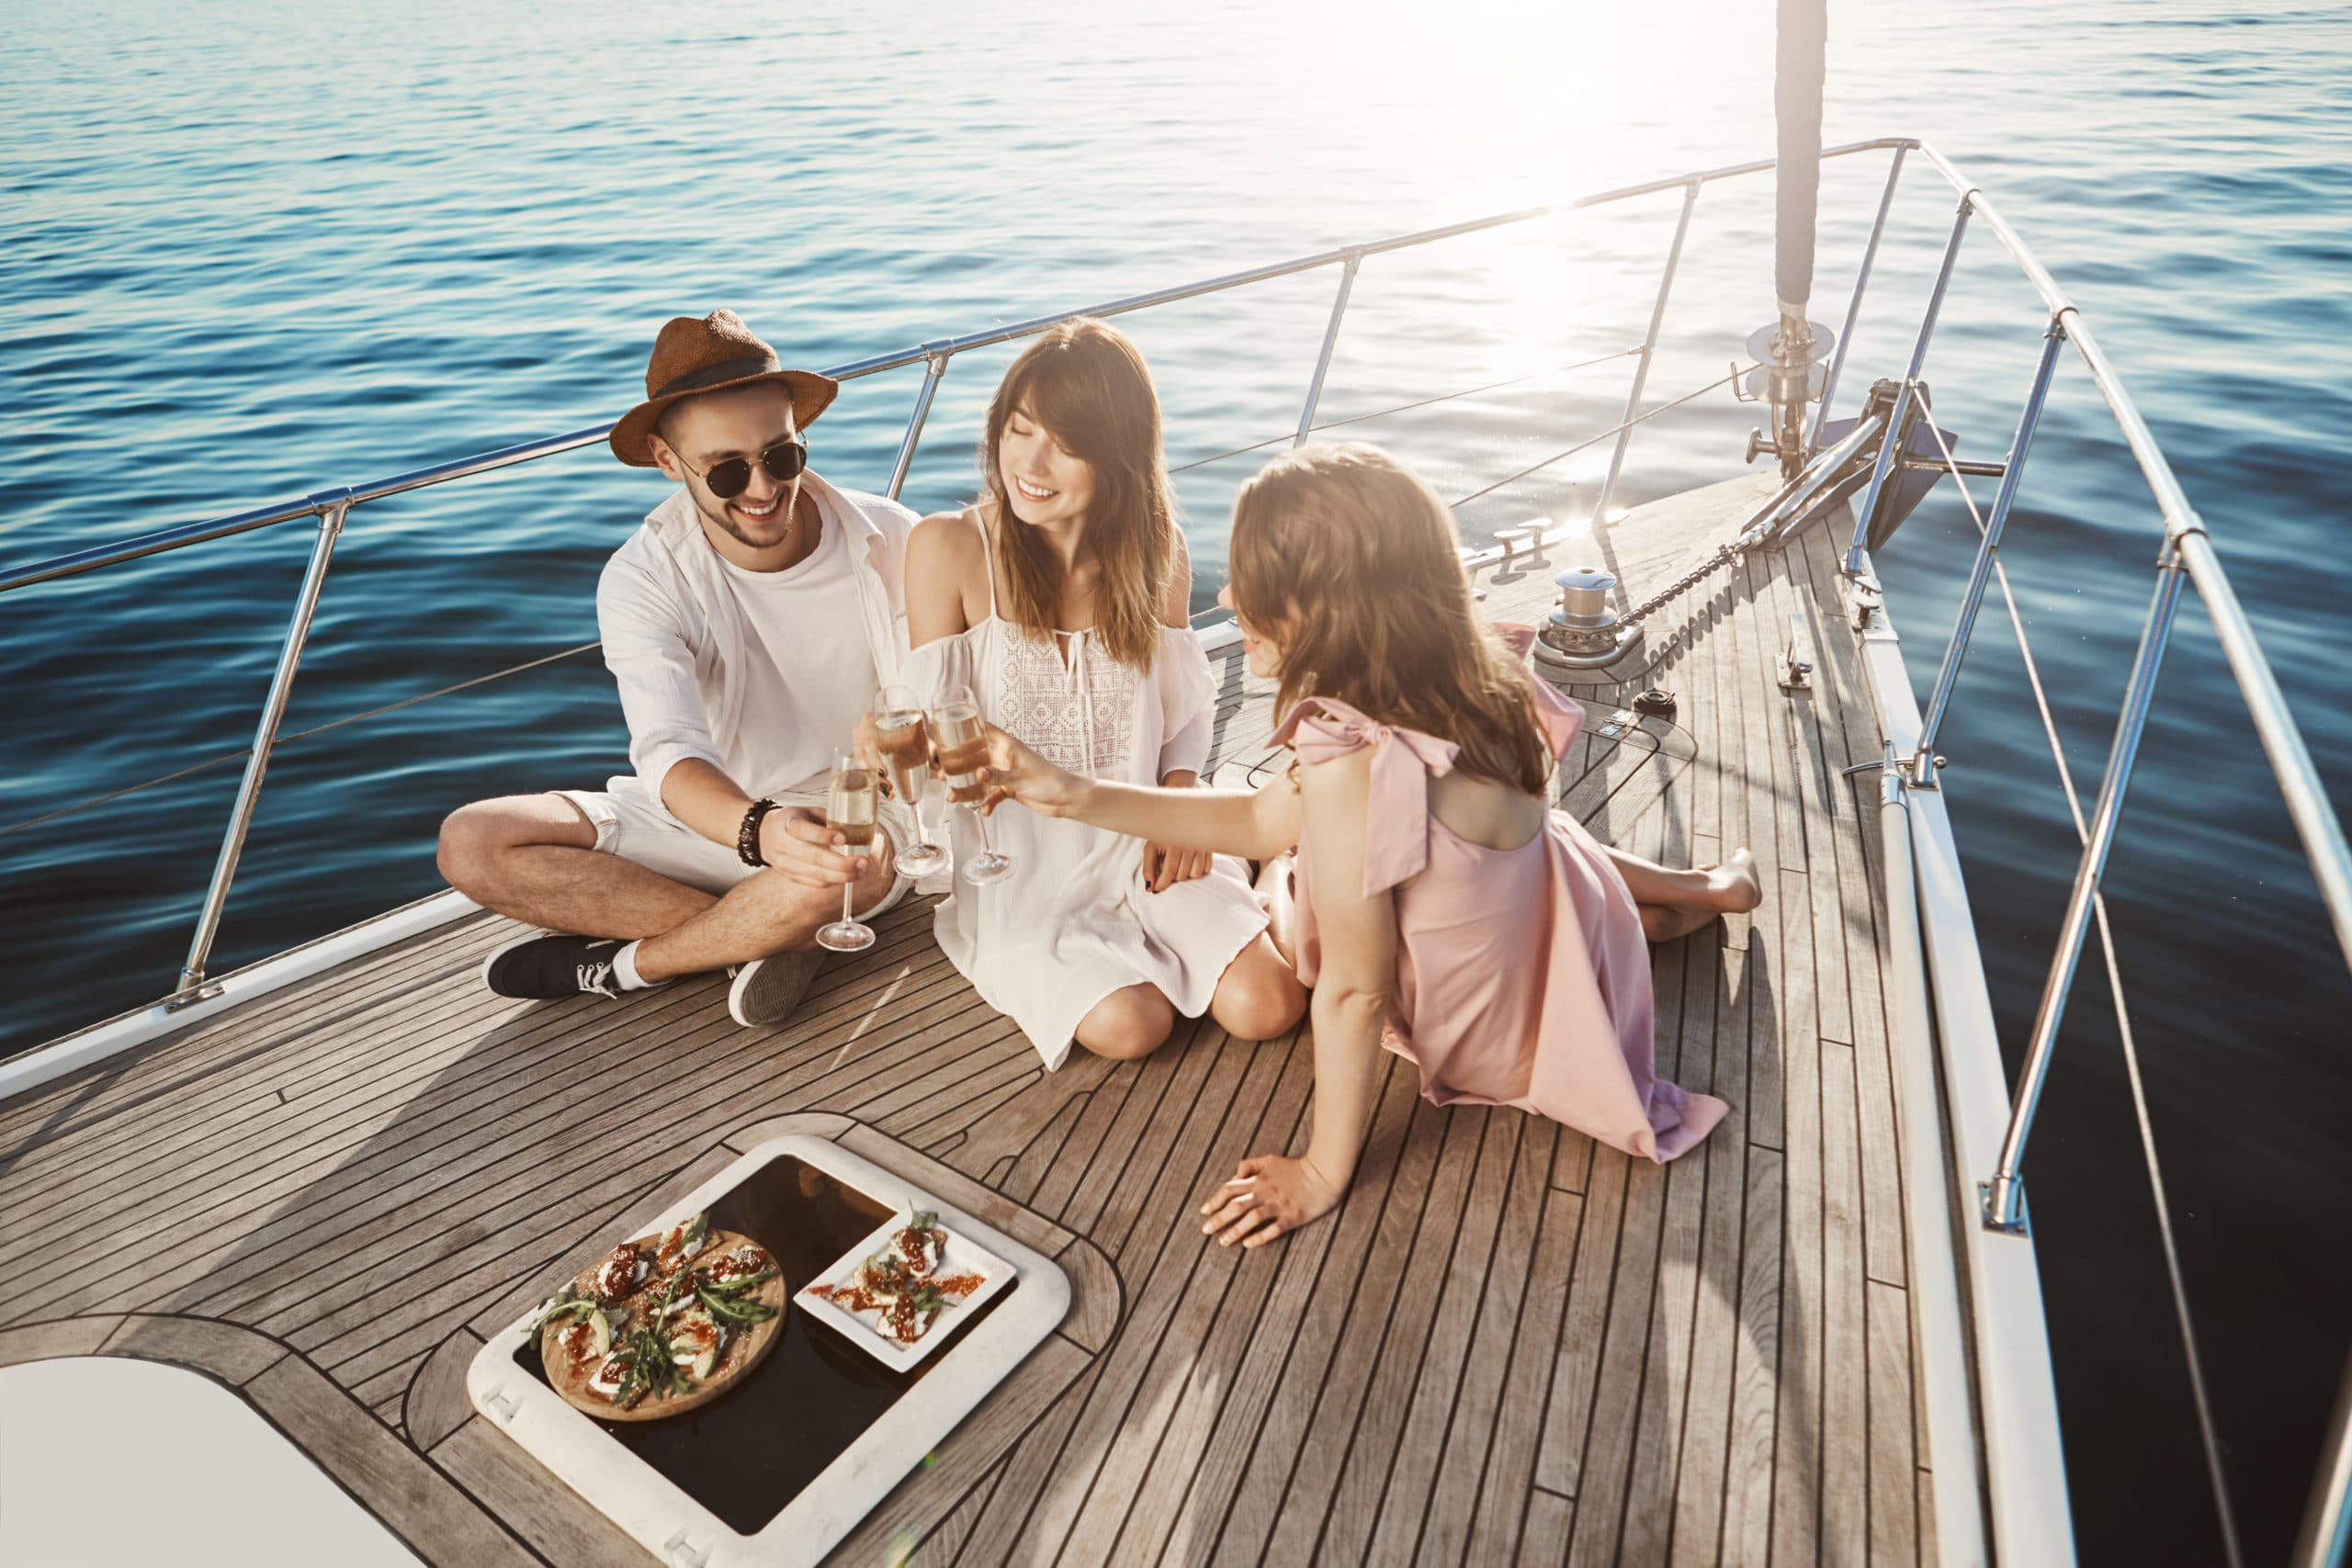 Having lunch on board of yacht